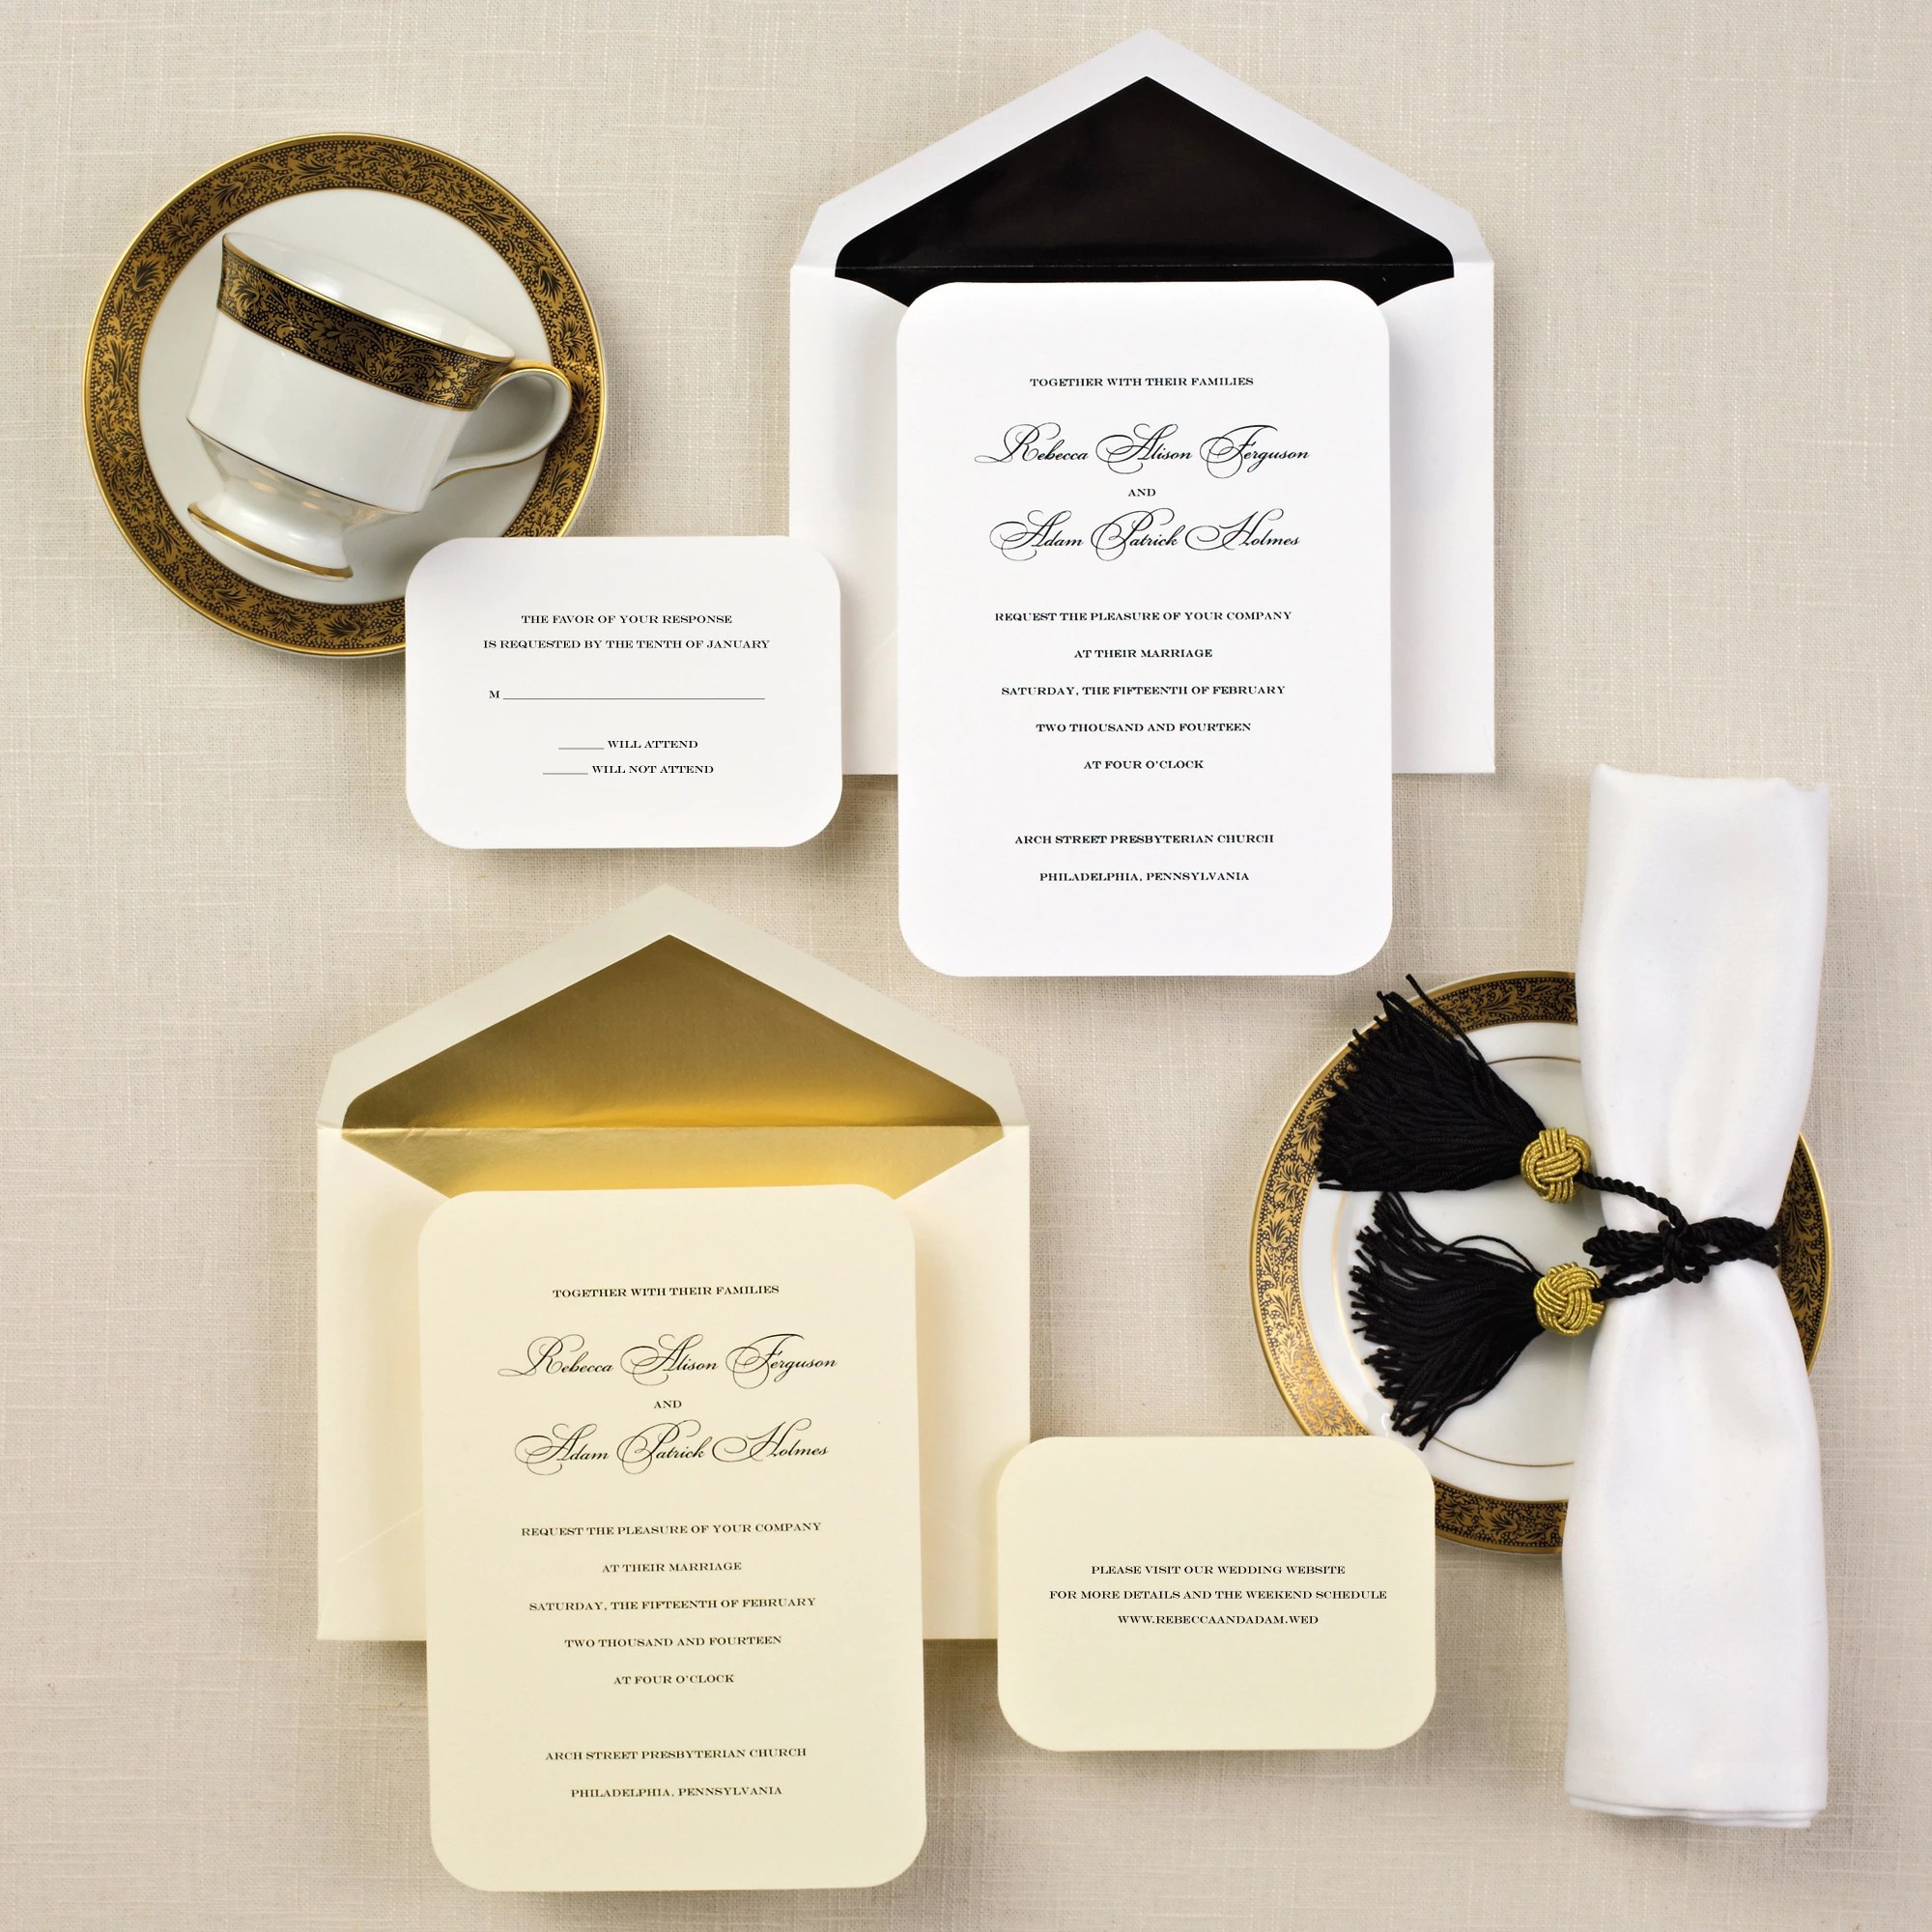 Simple Elegance Wedding Invitation wedding invitations with pictures